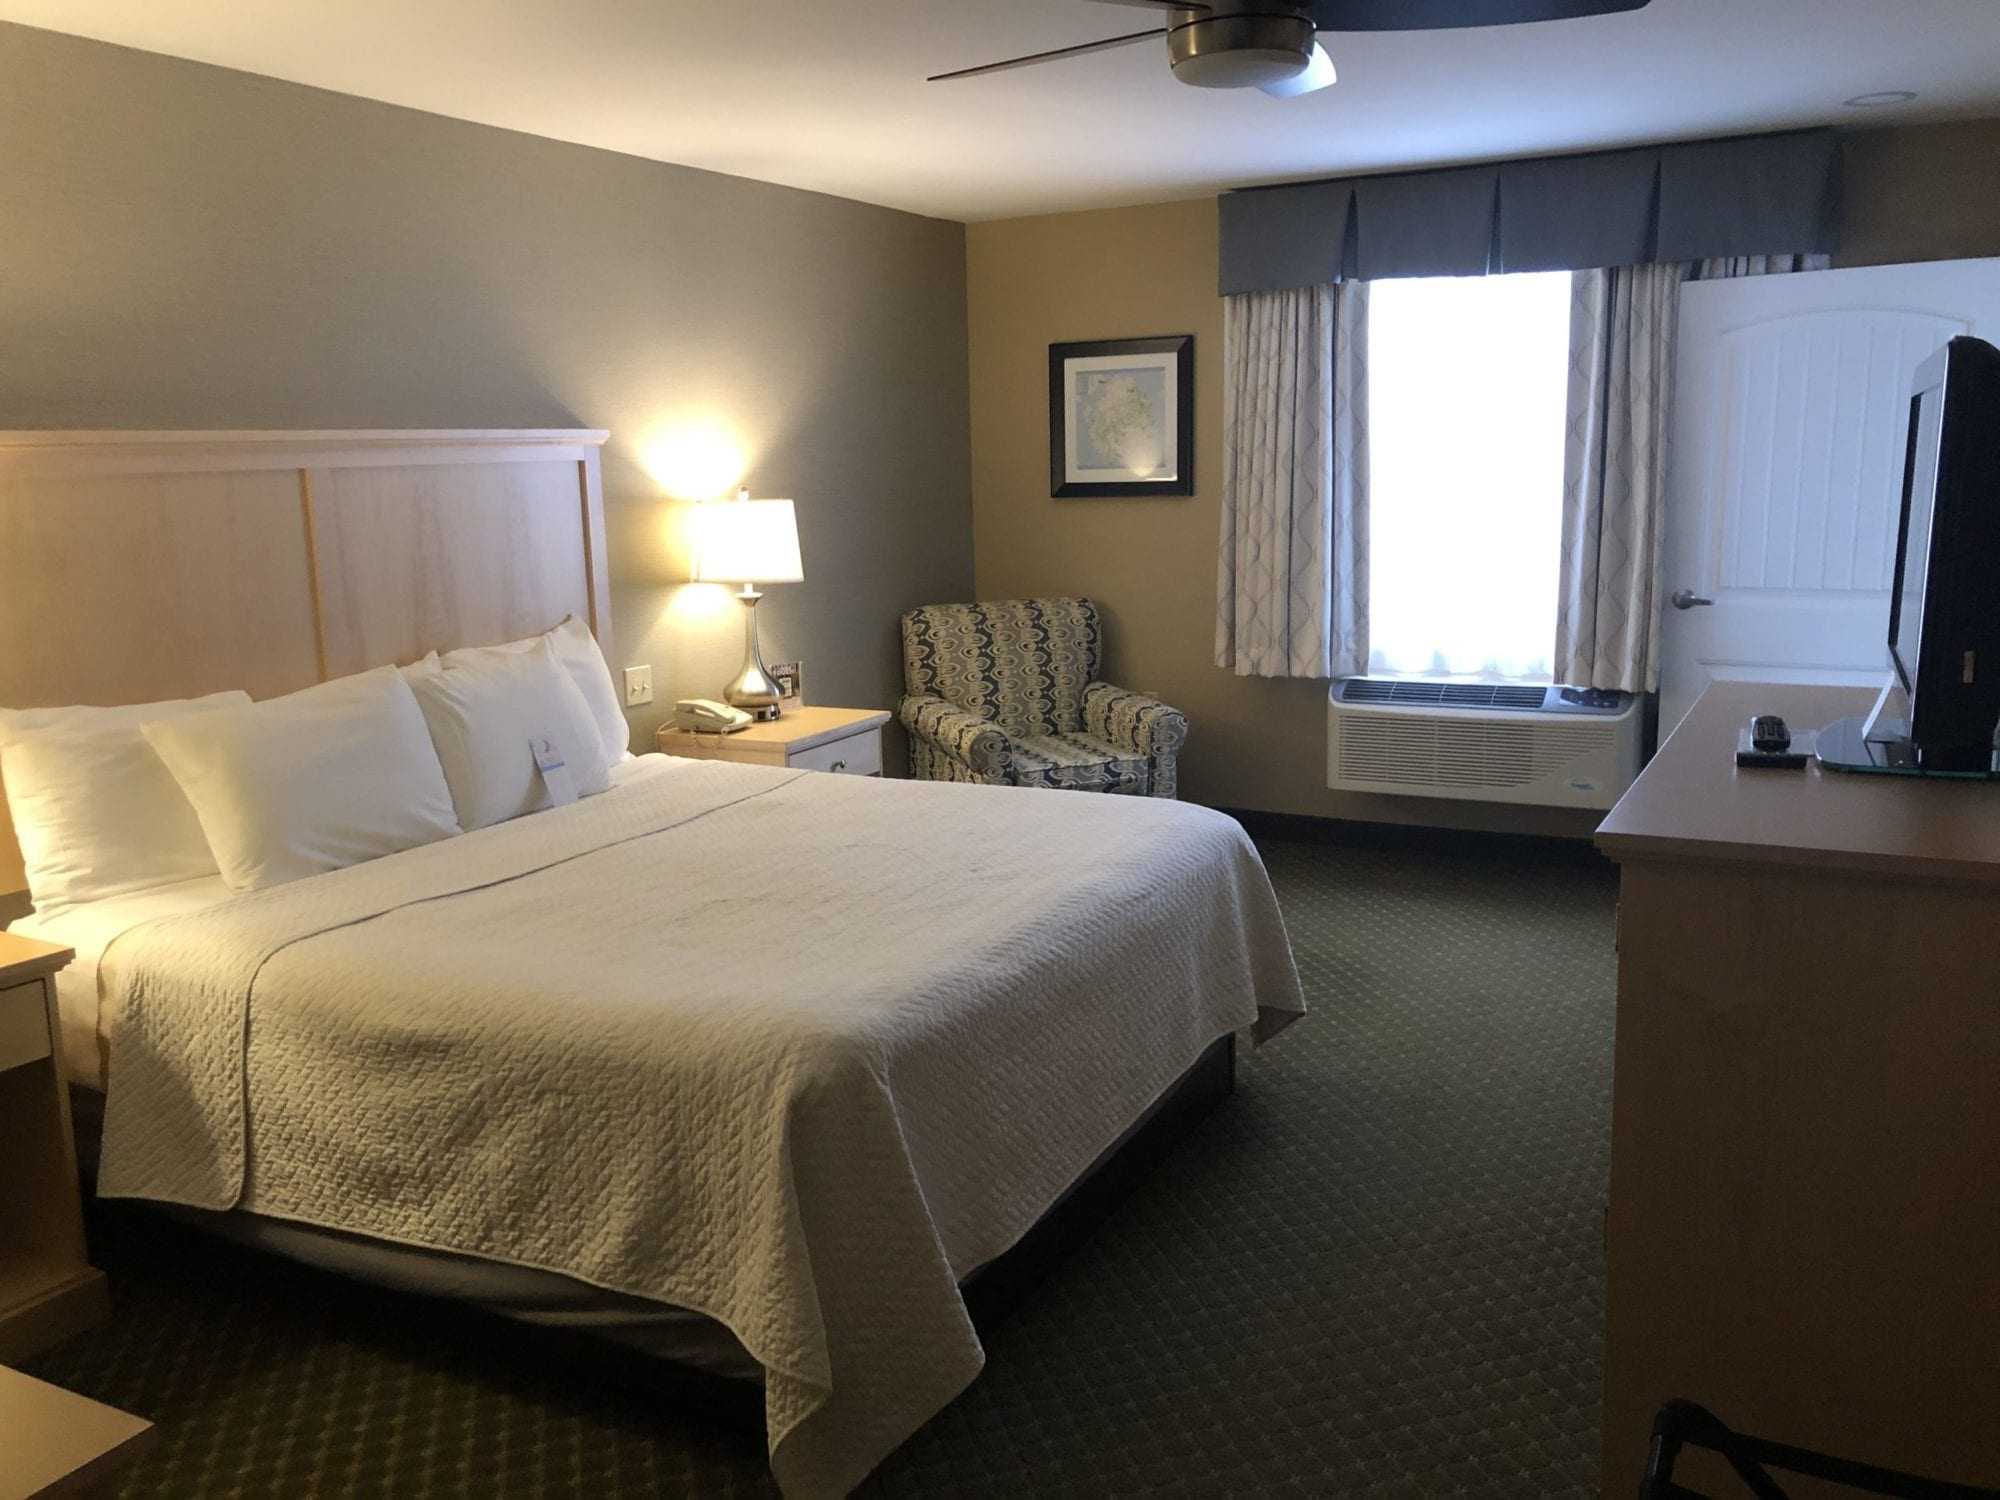 Photo of the bedroom of the Accessible King Suite at the Acadia Inn.